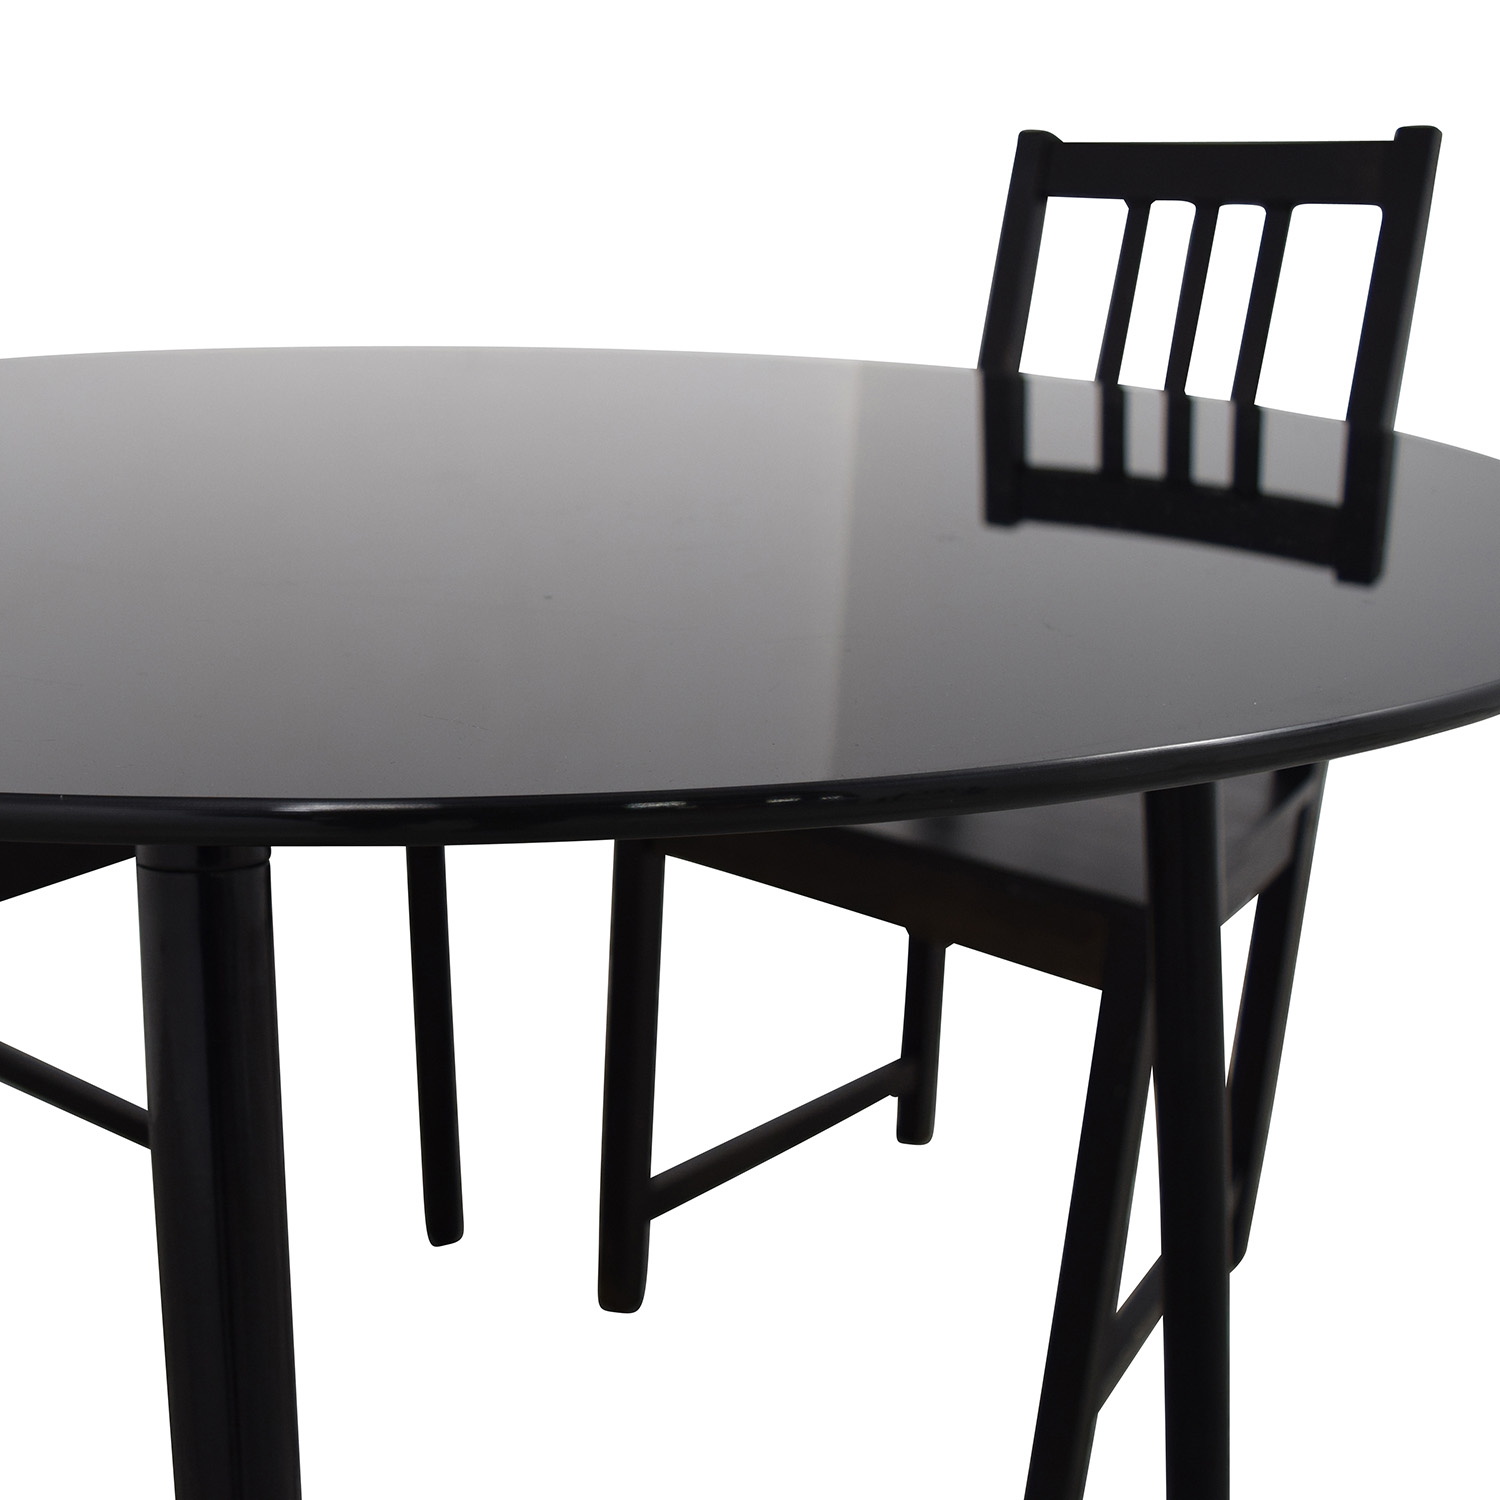 31 off ikea ikea glass and wood table and chairs tables - Ikea wooden dining table chairs ...